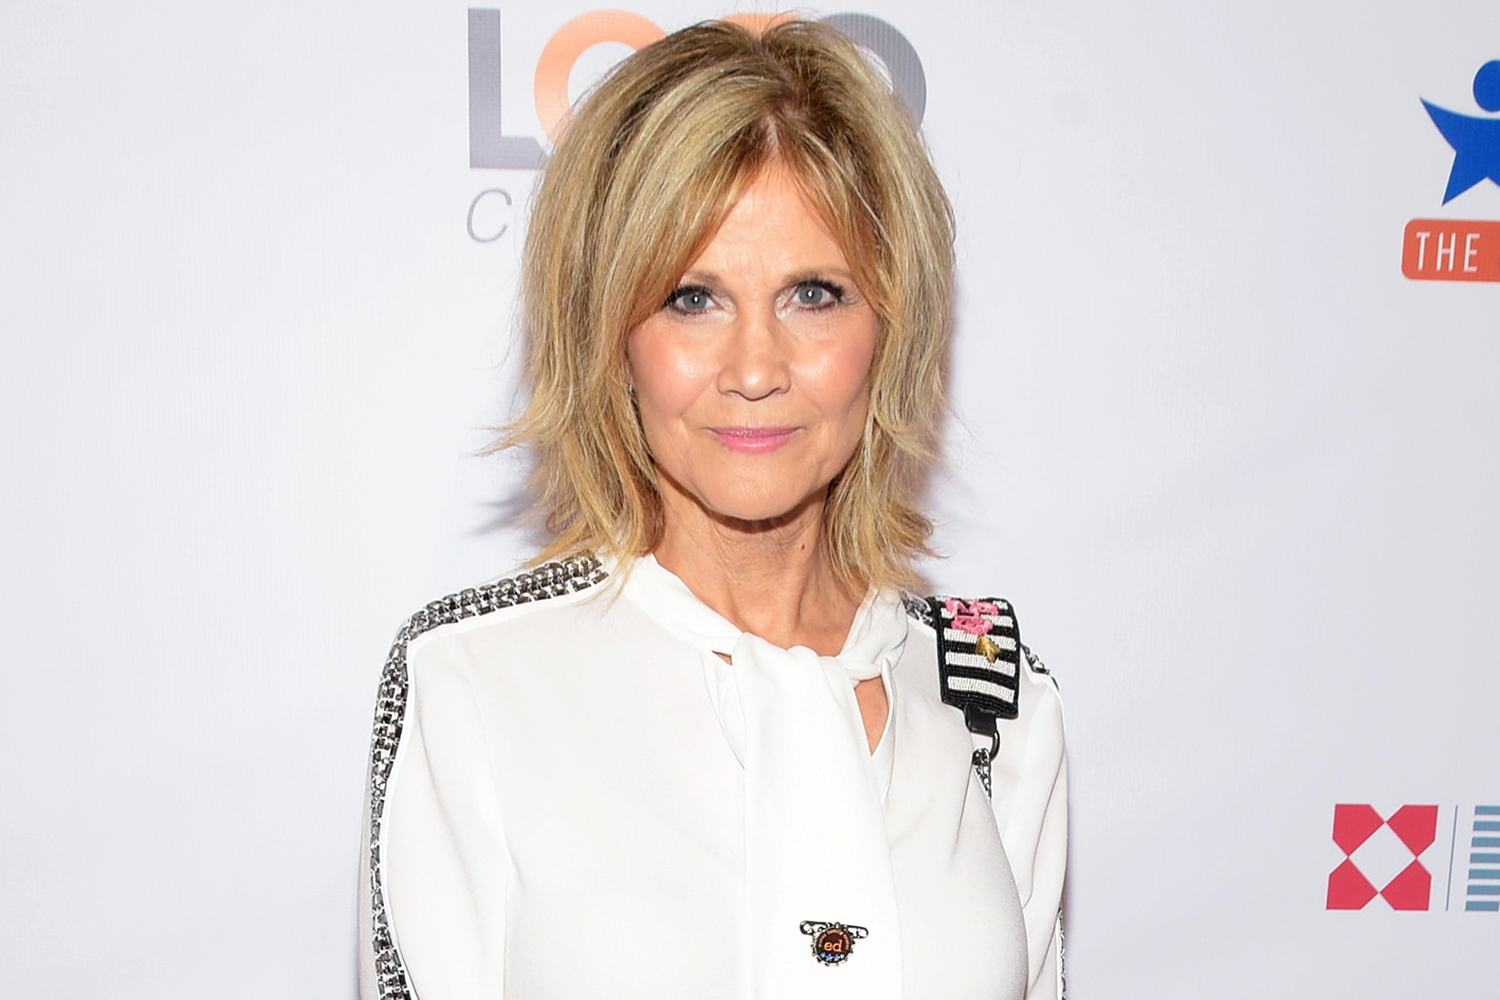 Markie Post attends the 6th Annual Ed Asner and Friends Poker Tournament Celebrity Night at Playa Studios on September 8, 2018 in Culver City, California.